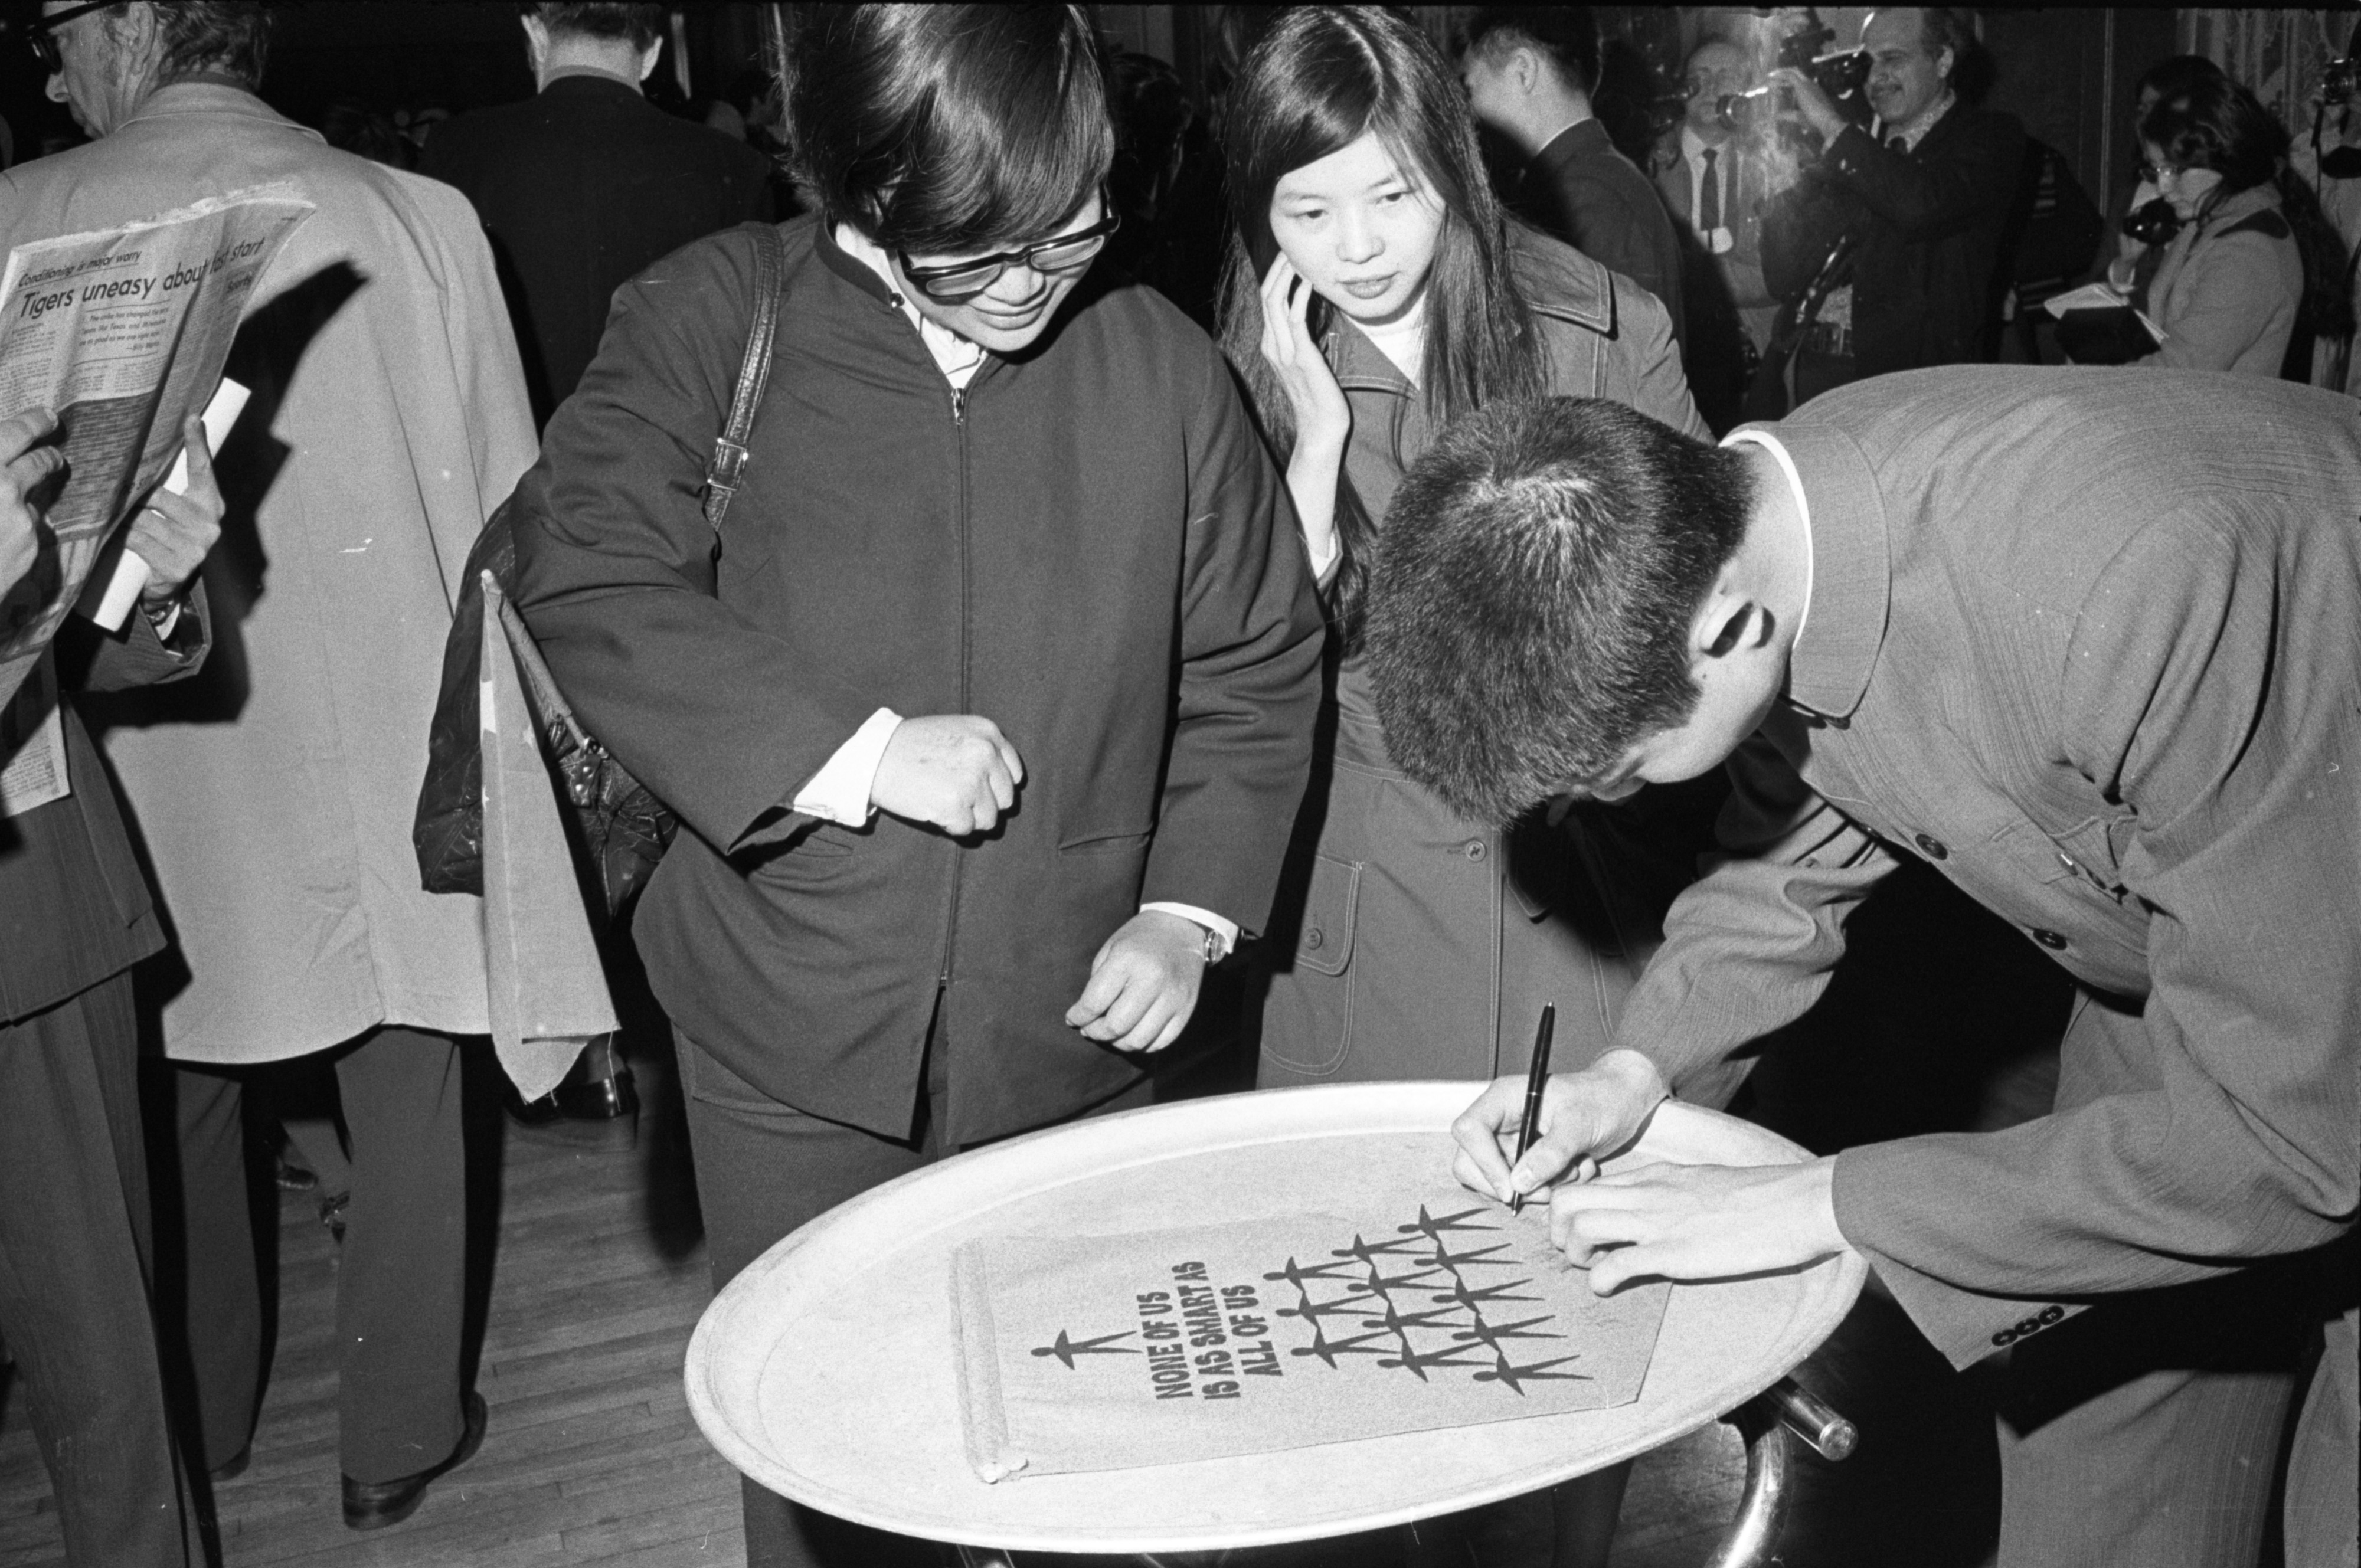 Guests From China Add Signatures To Poster During Reception At Michigan Union, April 1972 image